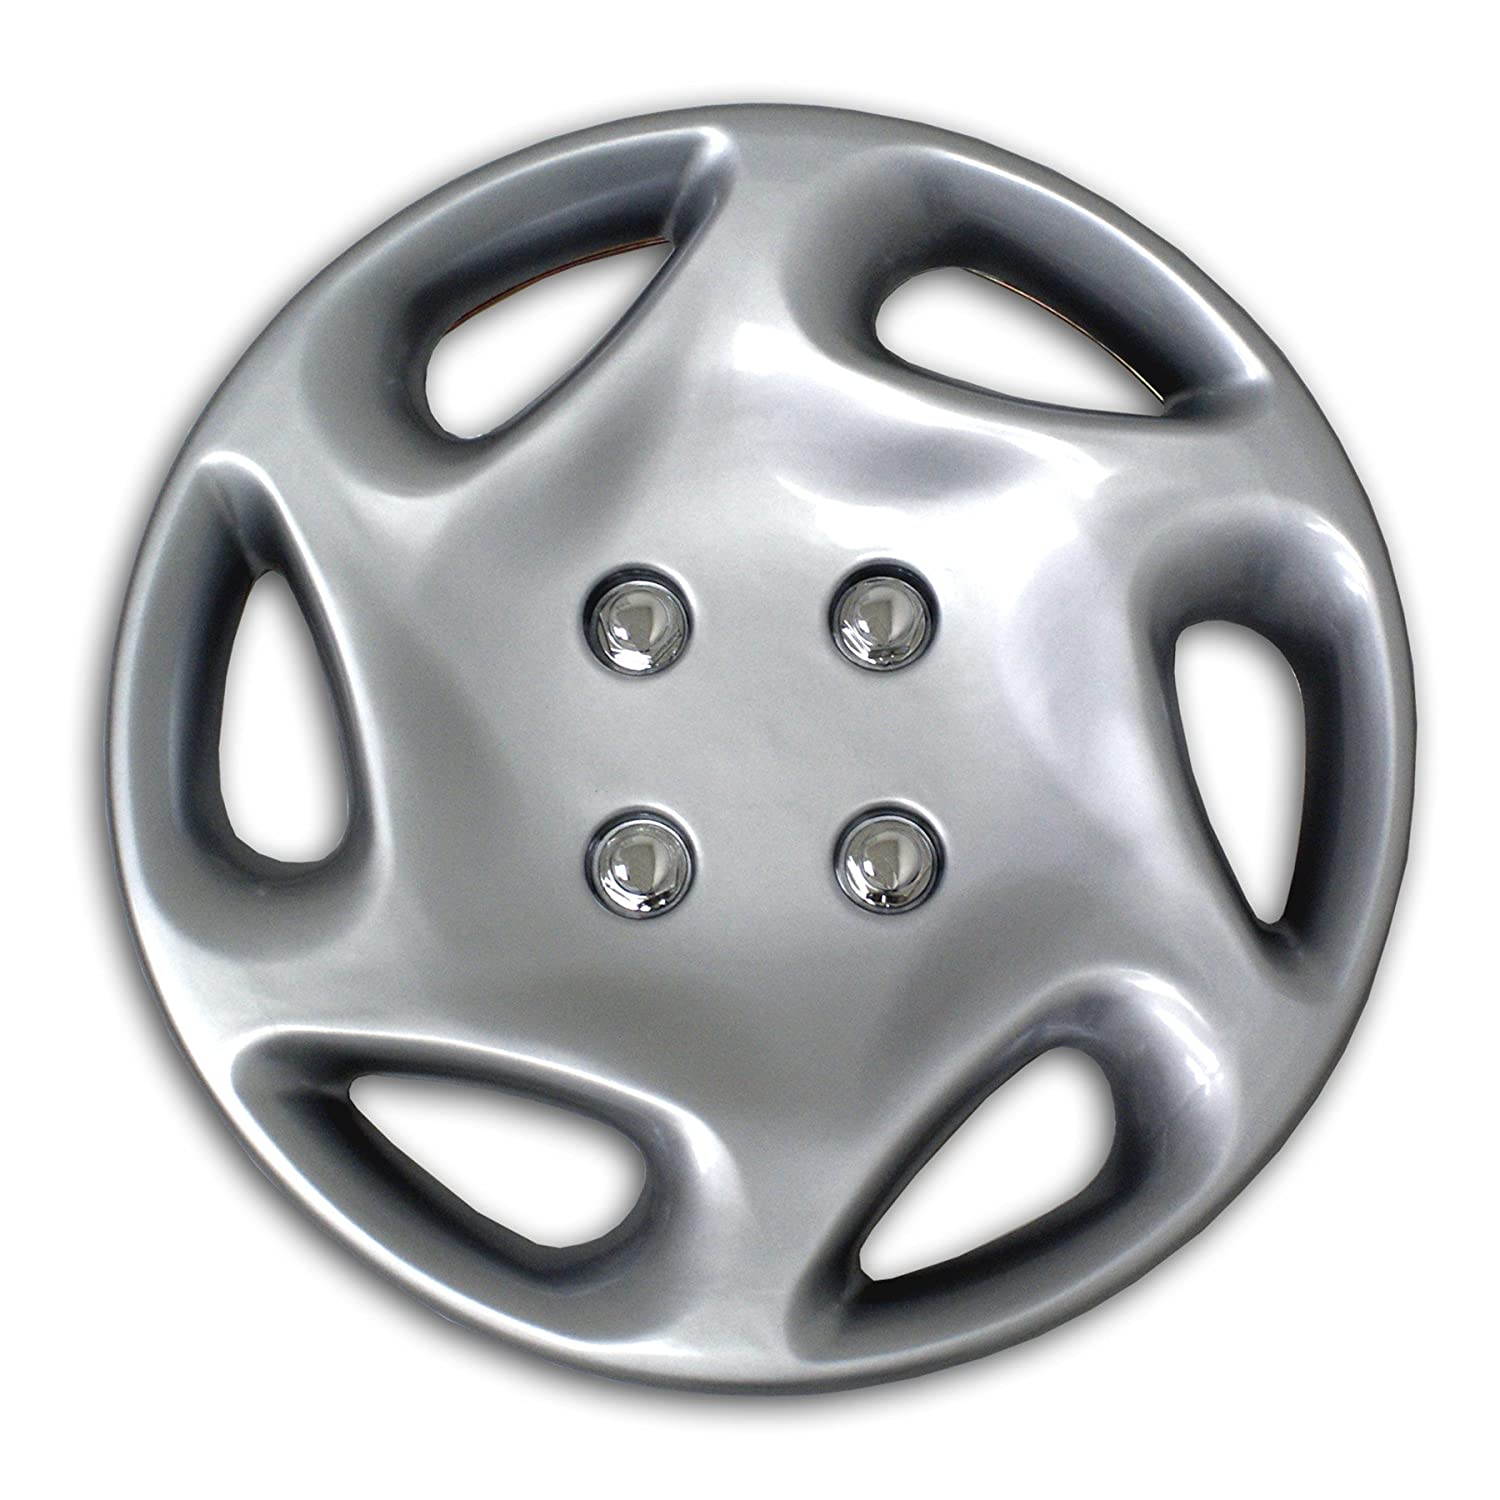 цена  TuningPros WSC2-018S14 Hubcaps Wheel Skin Cover Type 2 14-Inches Silver Set of 4  онлайн в 2017 году